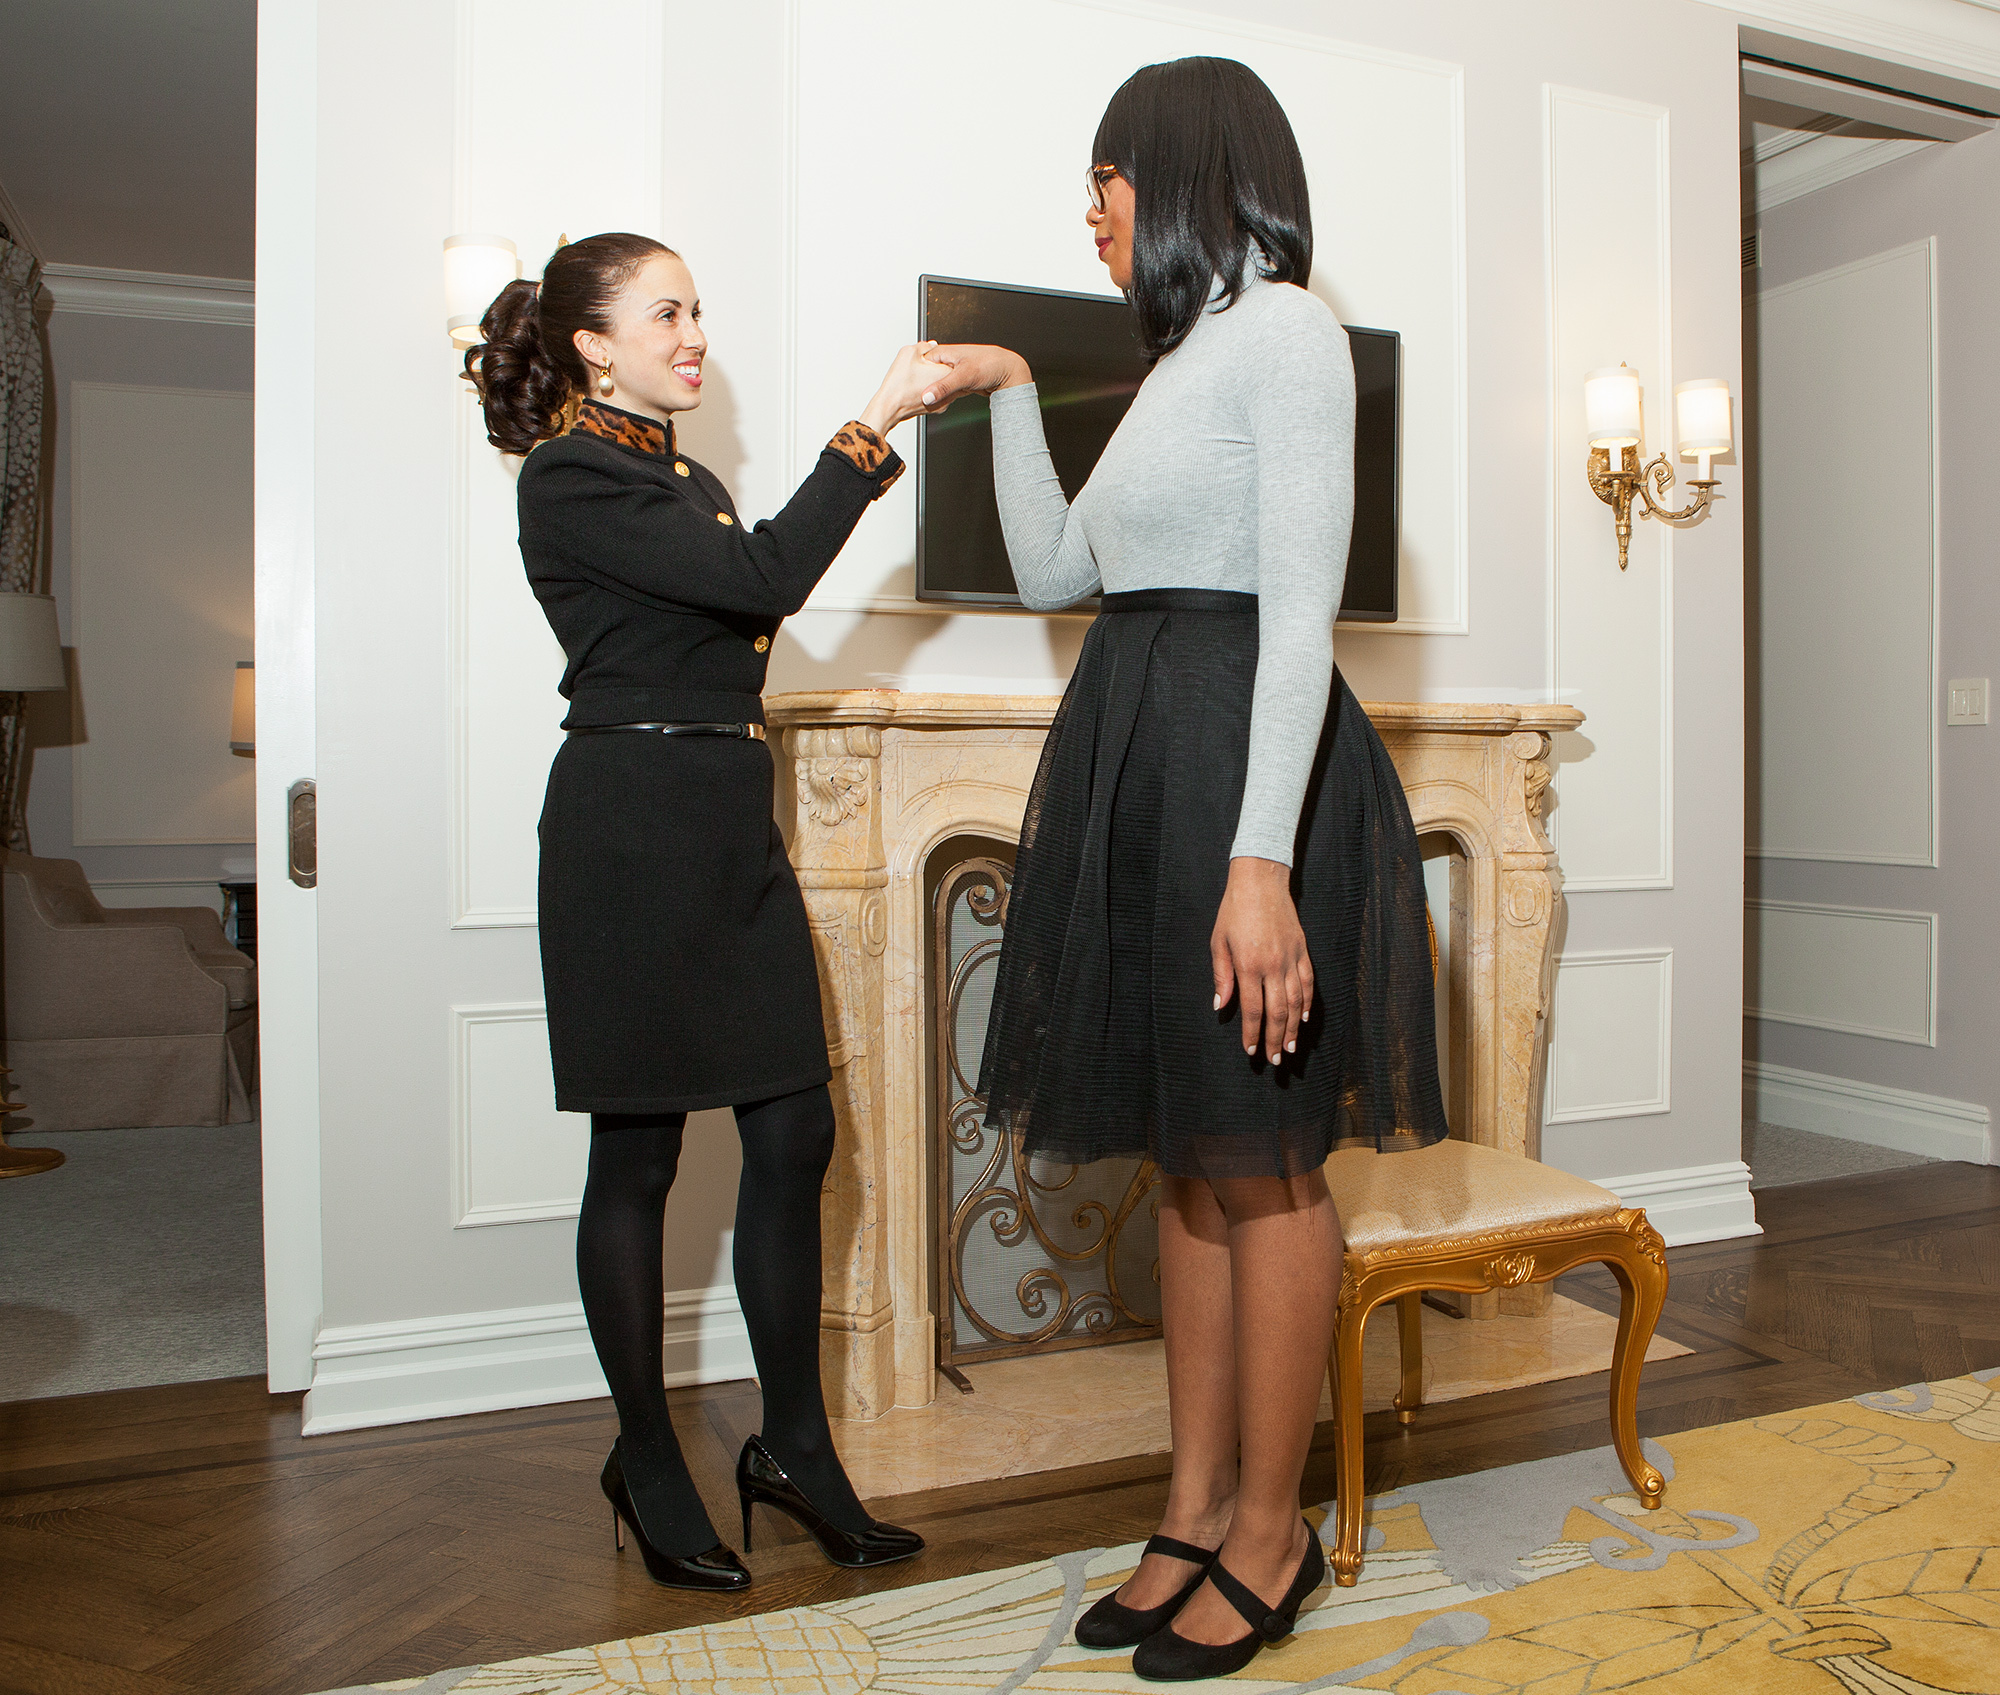 People com editor Char Adams Royal Etiquette training at the Plaza Hotel in New York City on Jan 17, 2017. Photo (C) GETTY